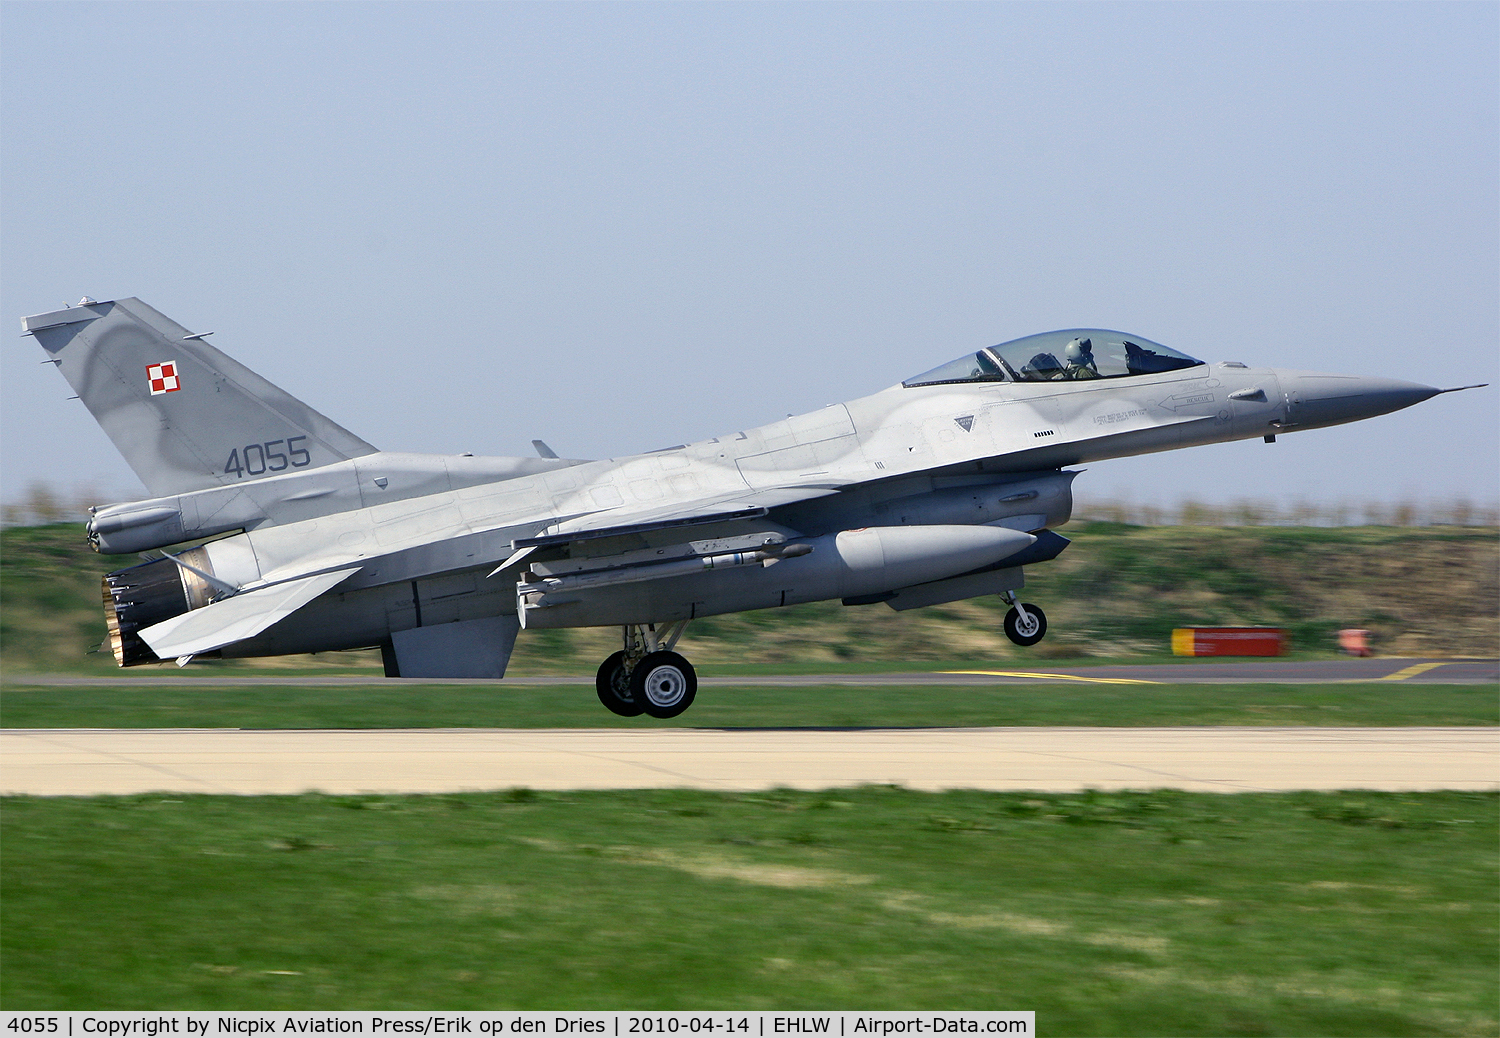 4055, 2007 Lockheed Martin F-16CJ Fighting Falcon C/N JC-16, Poland AF F-16C 4055 on landing on runway 06 at Leeuwarden AB, The Netherlands, during Frisian Flag 2010